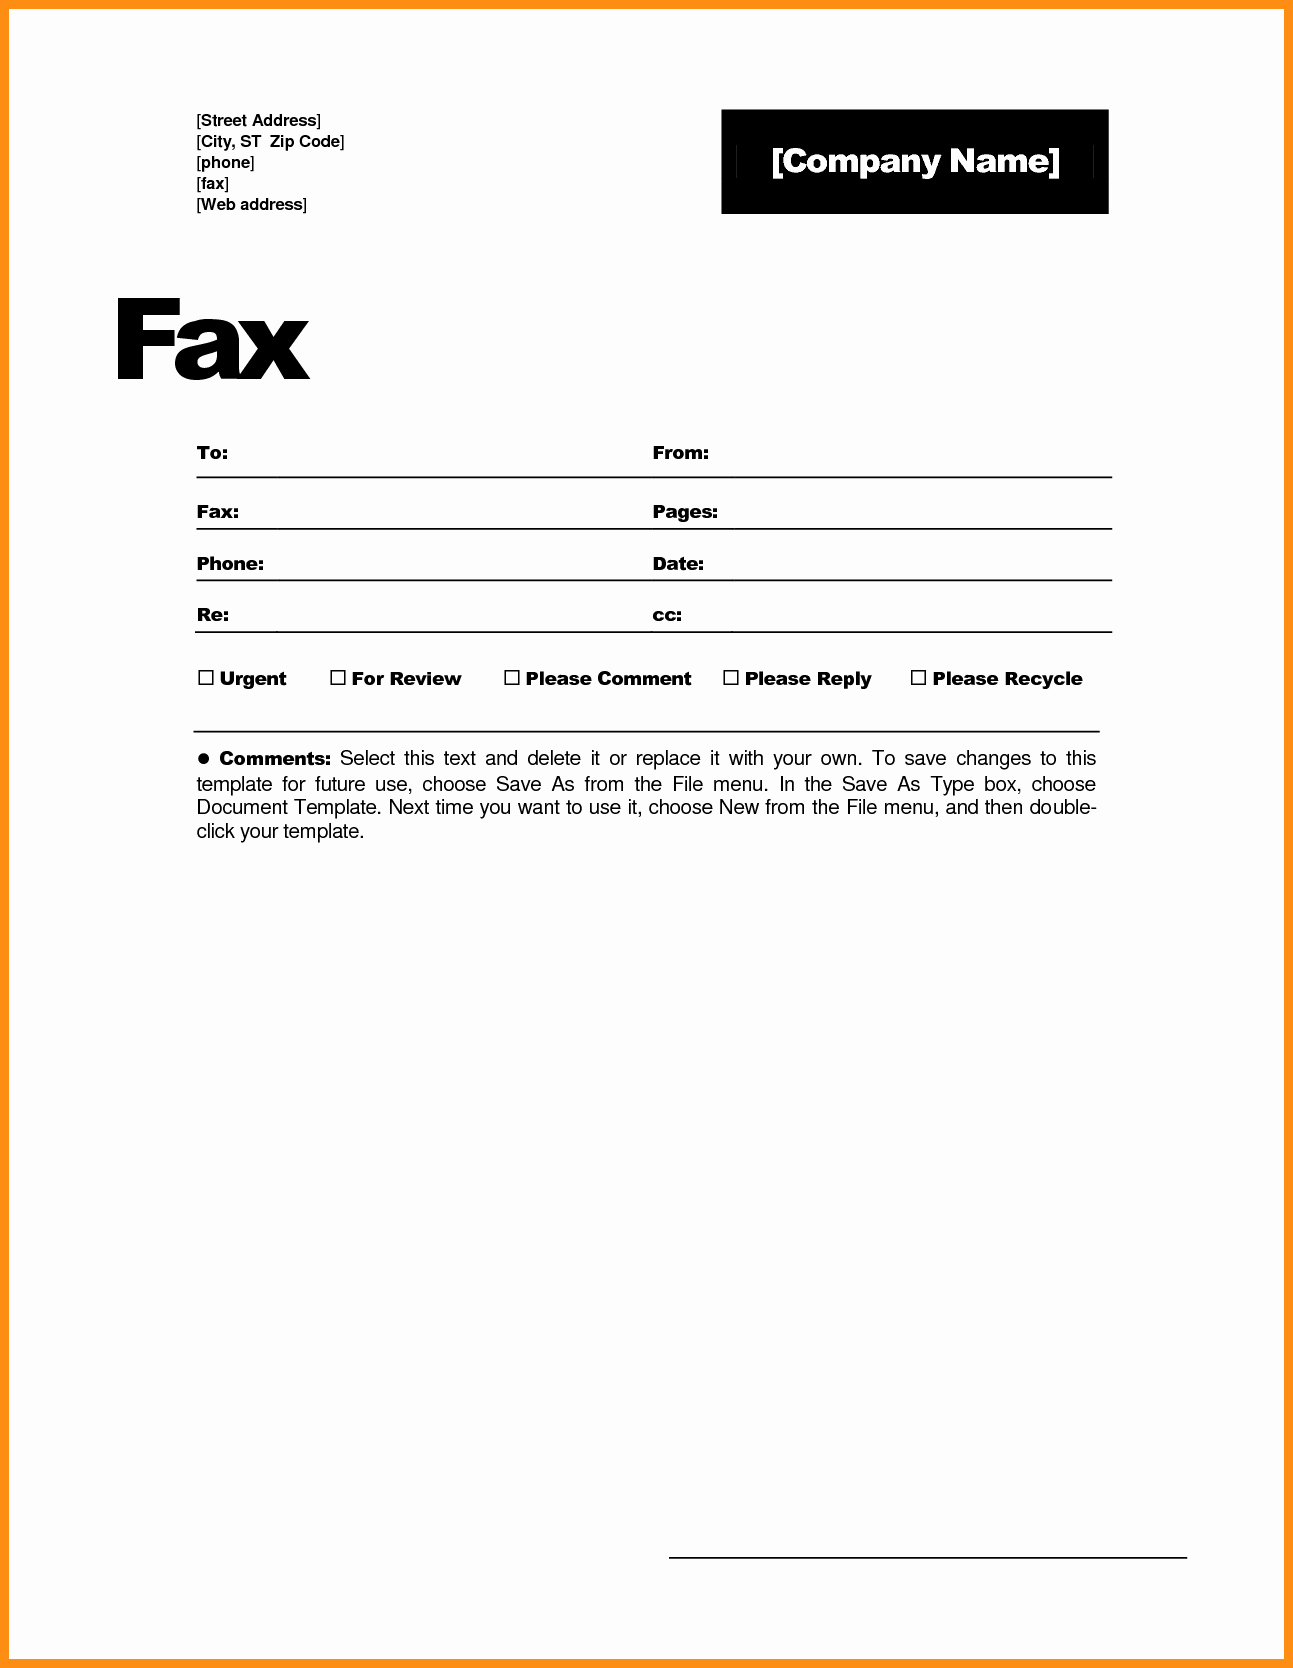 Free Fax Cover Page Template Luxury 6 Free Fax Cover Sheet Template Word